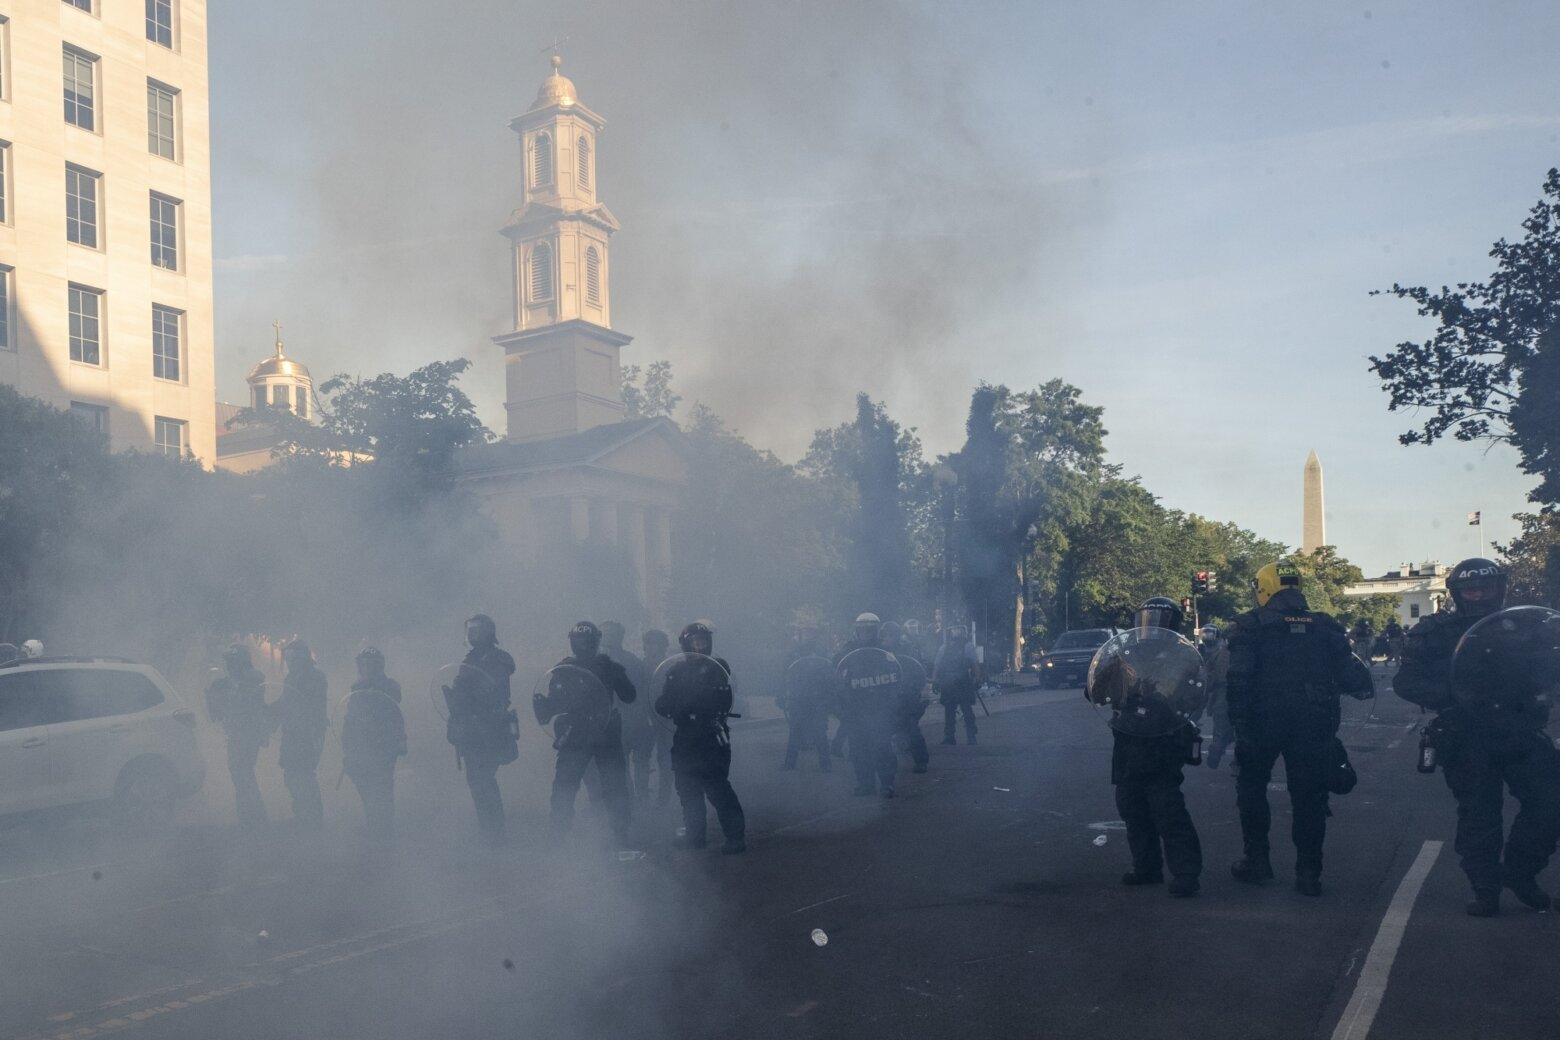 https://www.globalresearch.ca/wp-content/uploads/2020/06/us-protest-george-floyd-police-tear-gas.jpg